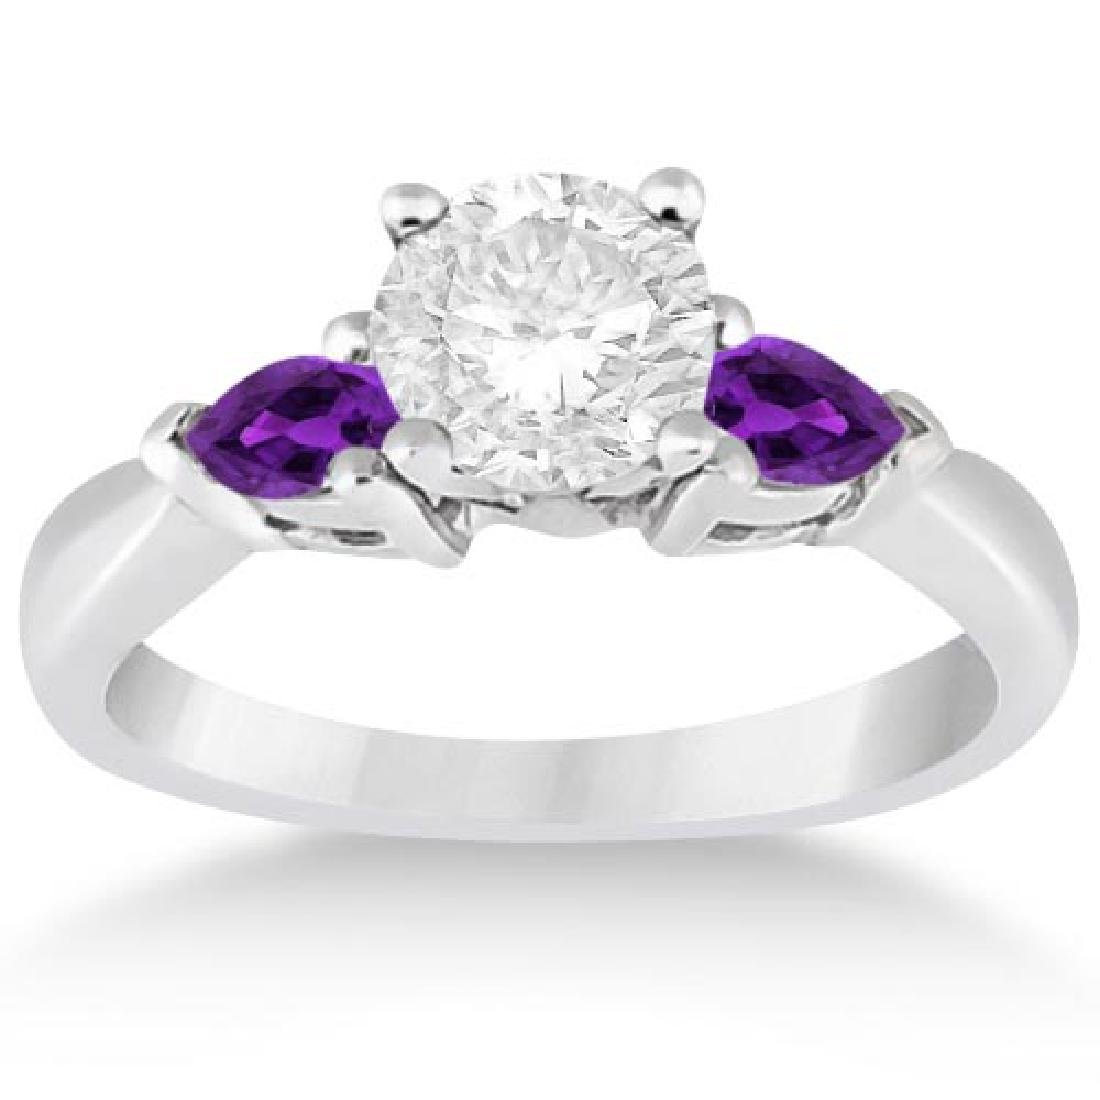 Pear Cut Three Stone Amethyst Engagement Ring 14k White